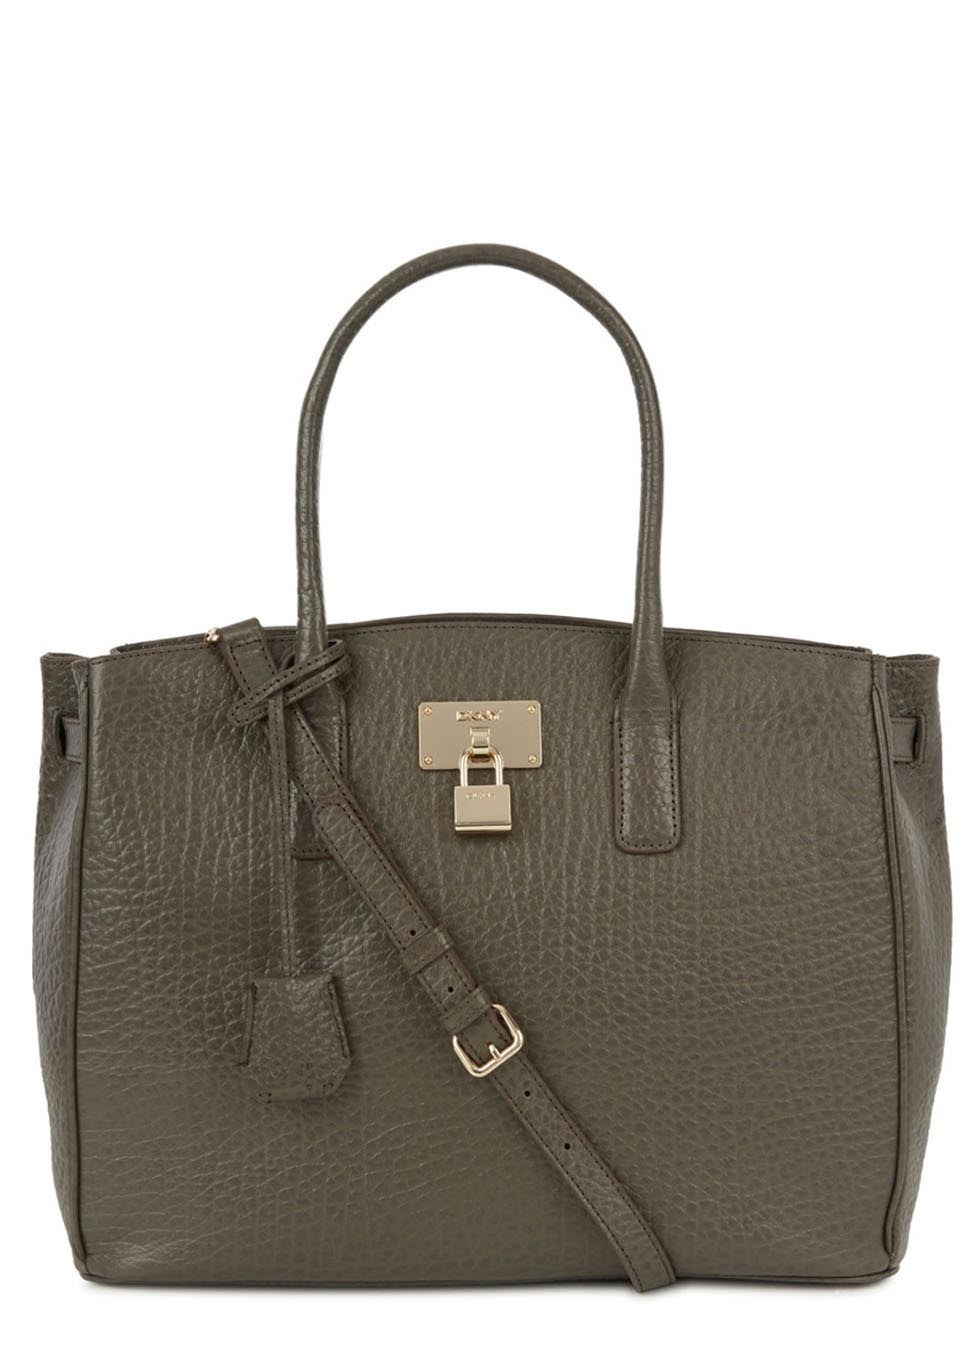 Beekman Grey Glossed Leather Tote - predominant colour: khaki; occasions: casual, work, creative work; type of pattern: standard; style: tote; length: handle; size: standard; material: faux leather; pattern: plain; finish: plain; season: s/s 2014